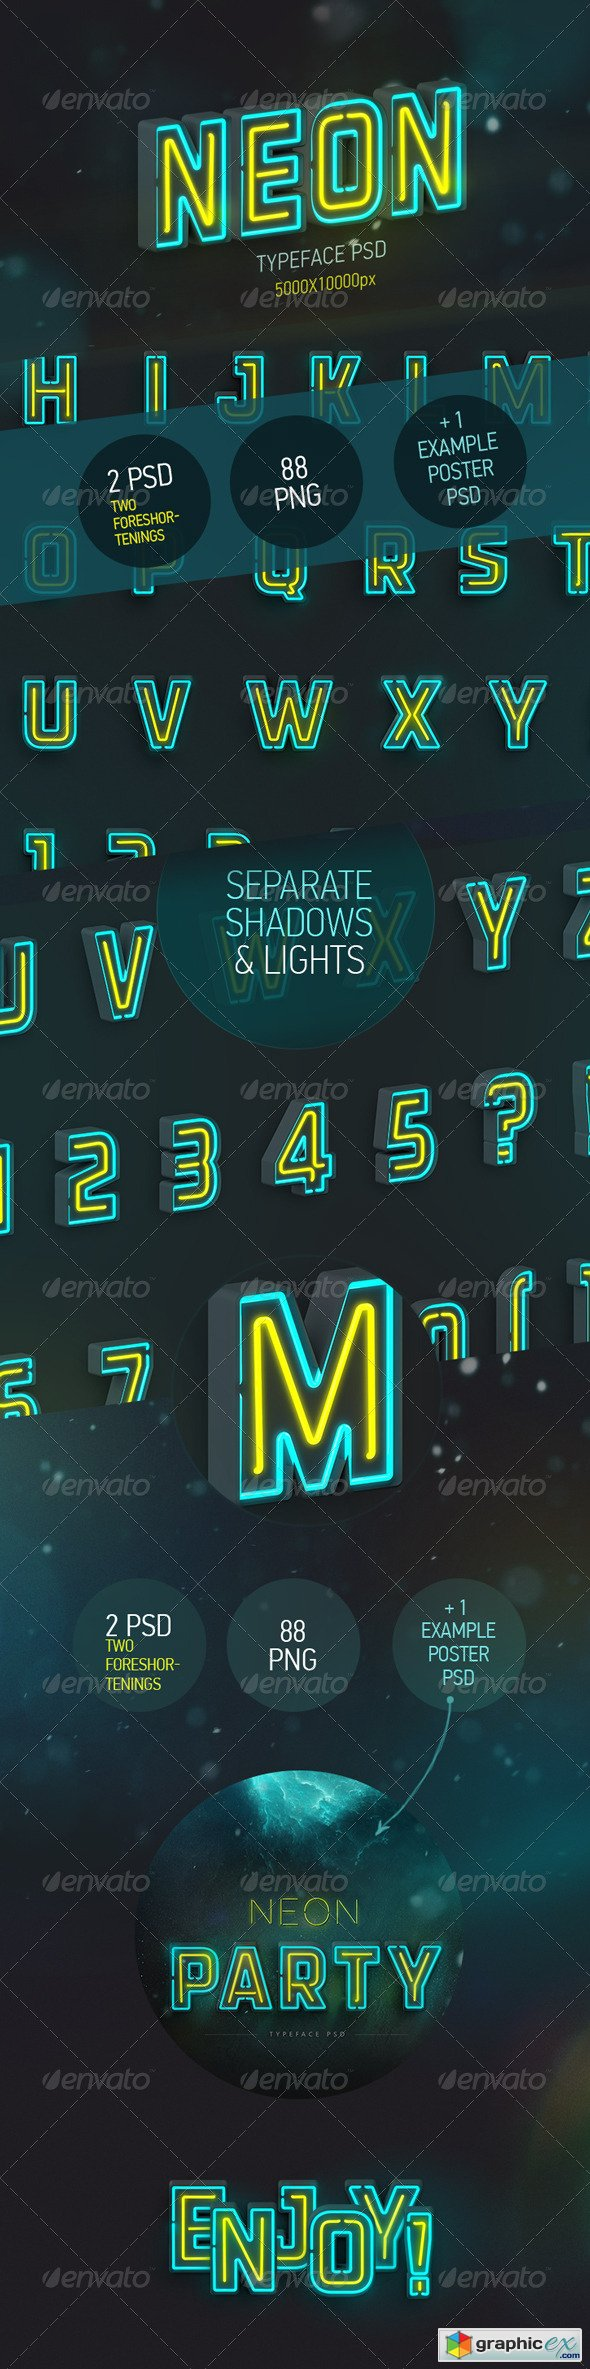 Neon Typeface (3 PSD, 88 PNG)